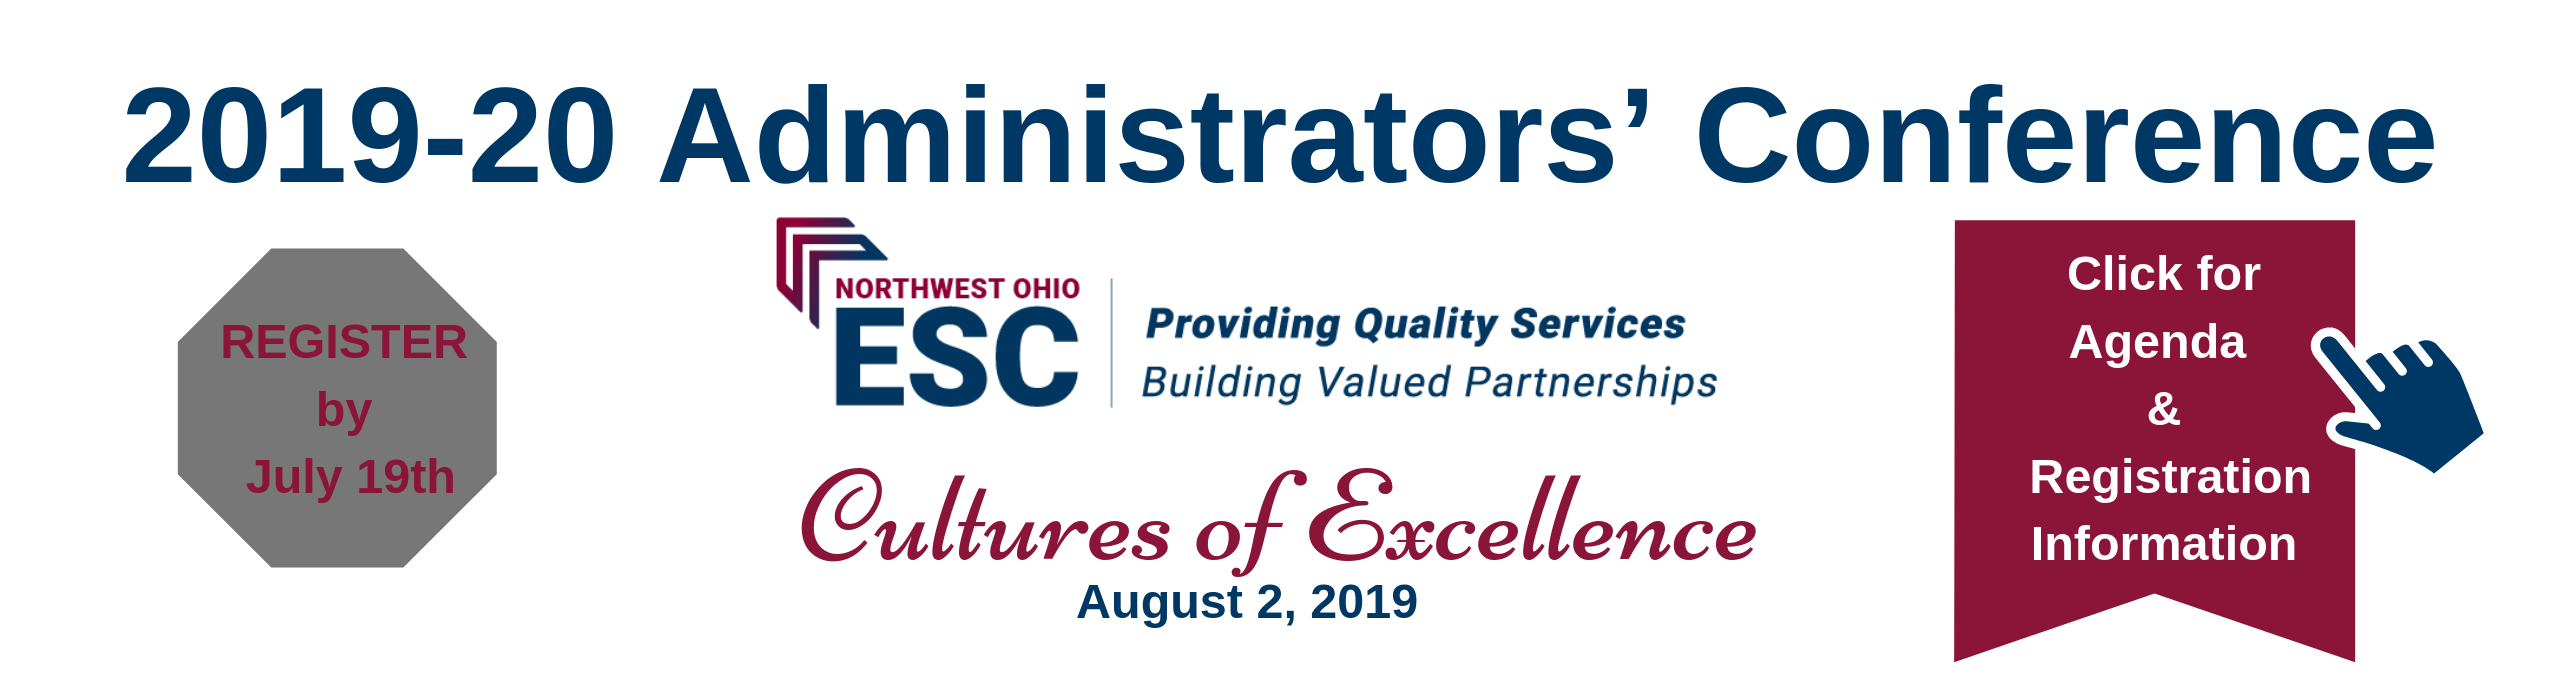 2019 Administrators Conference banner - click for more info